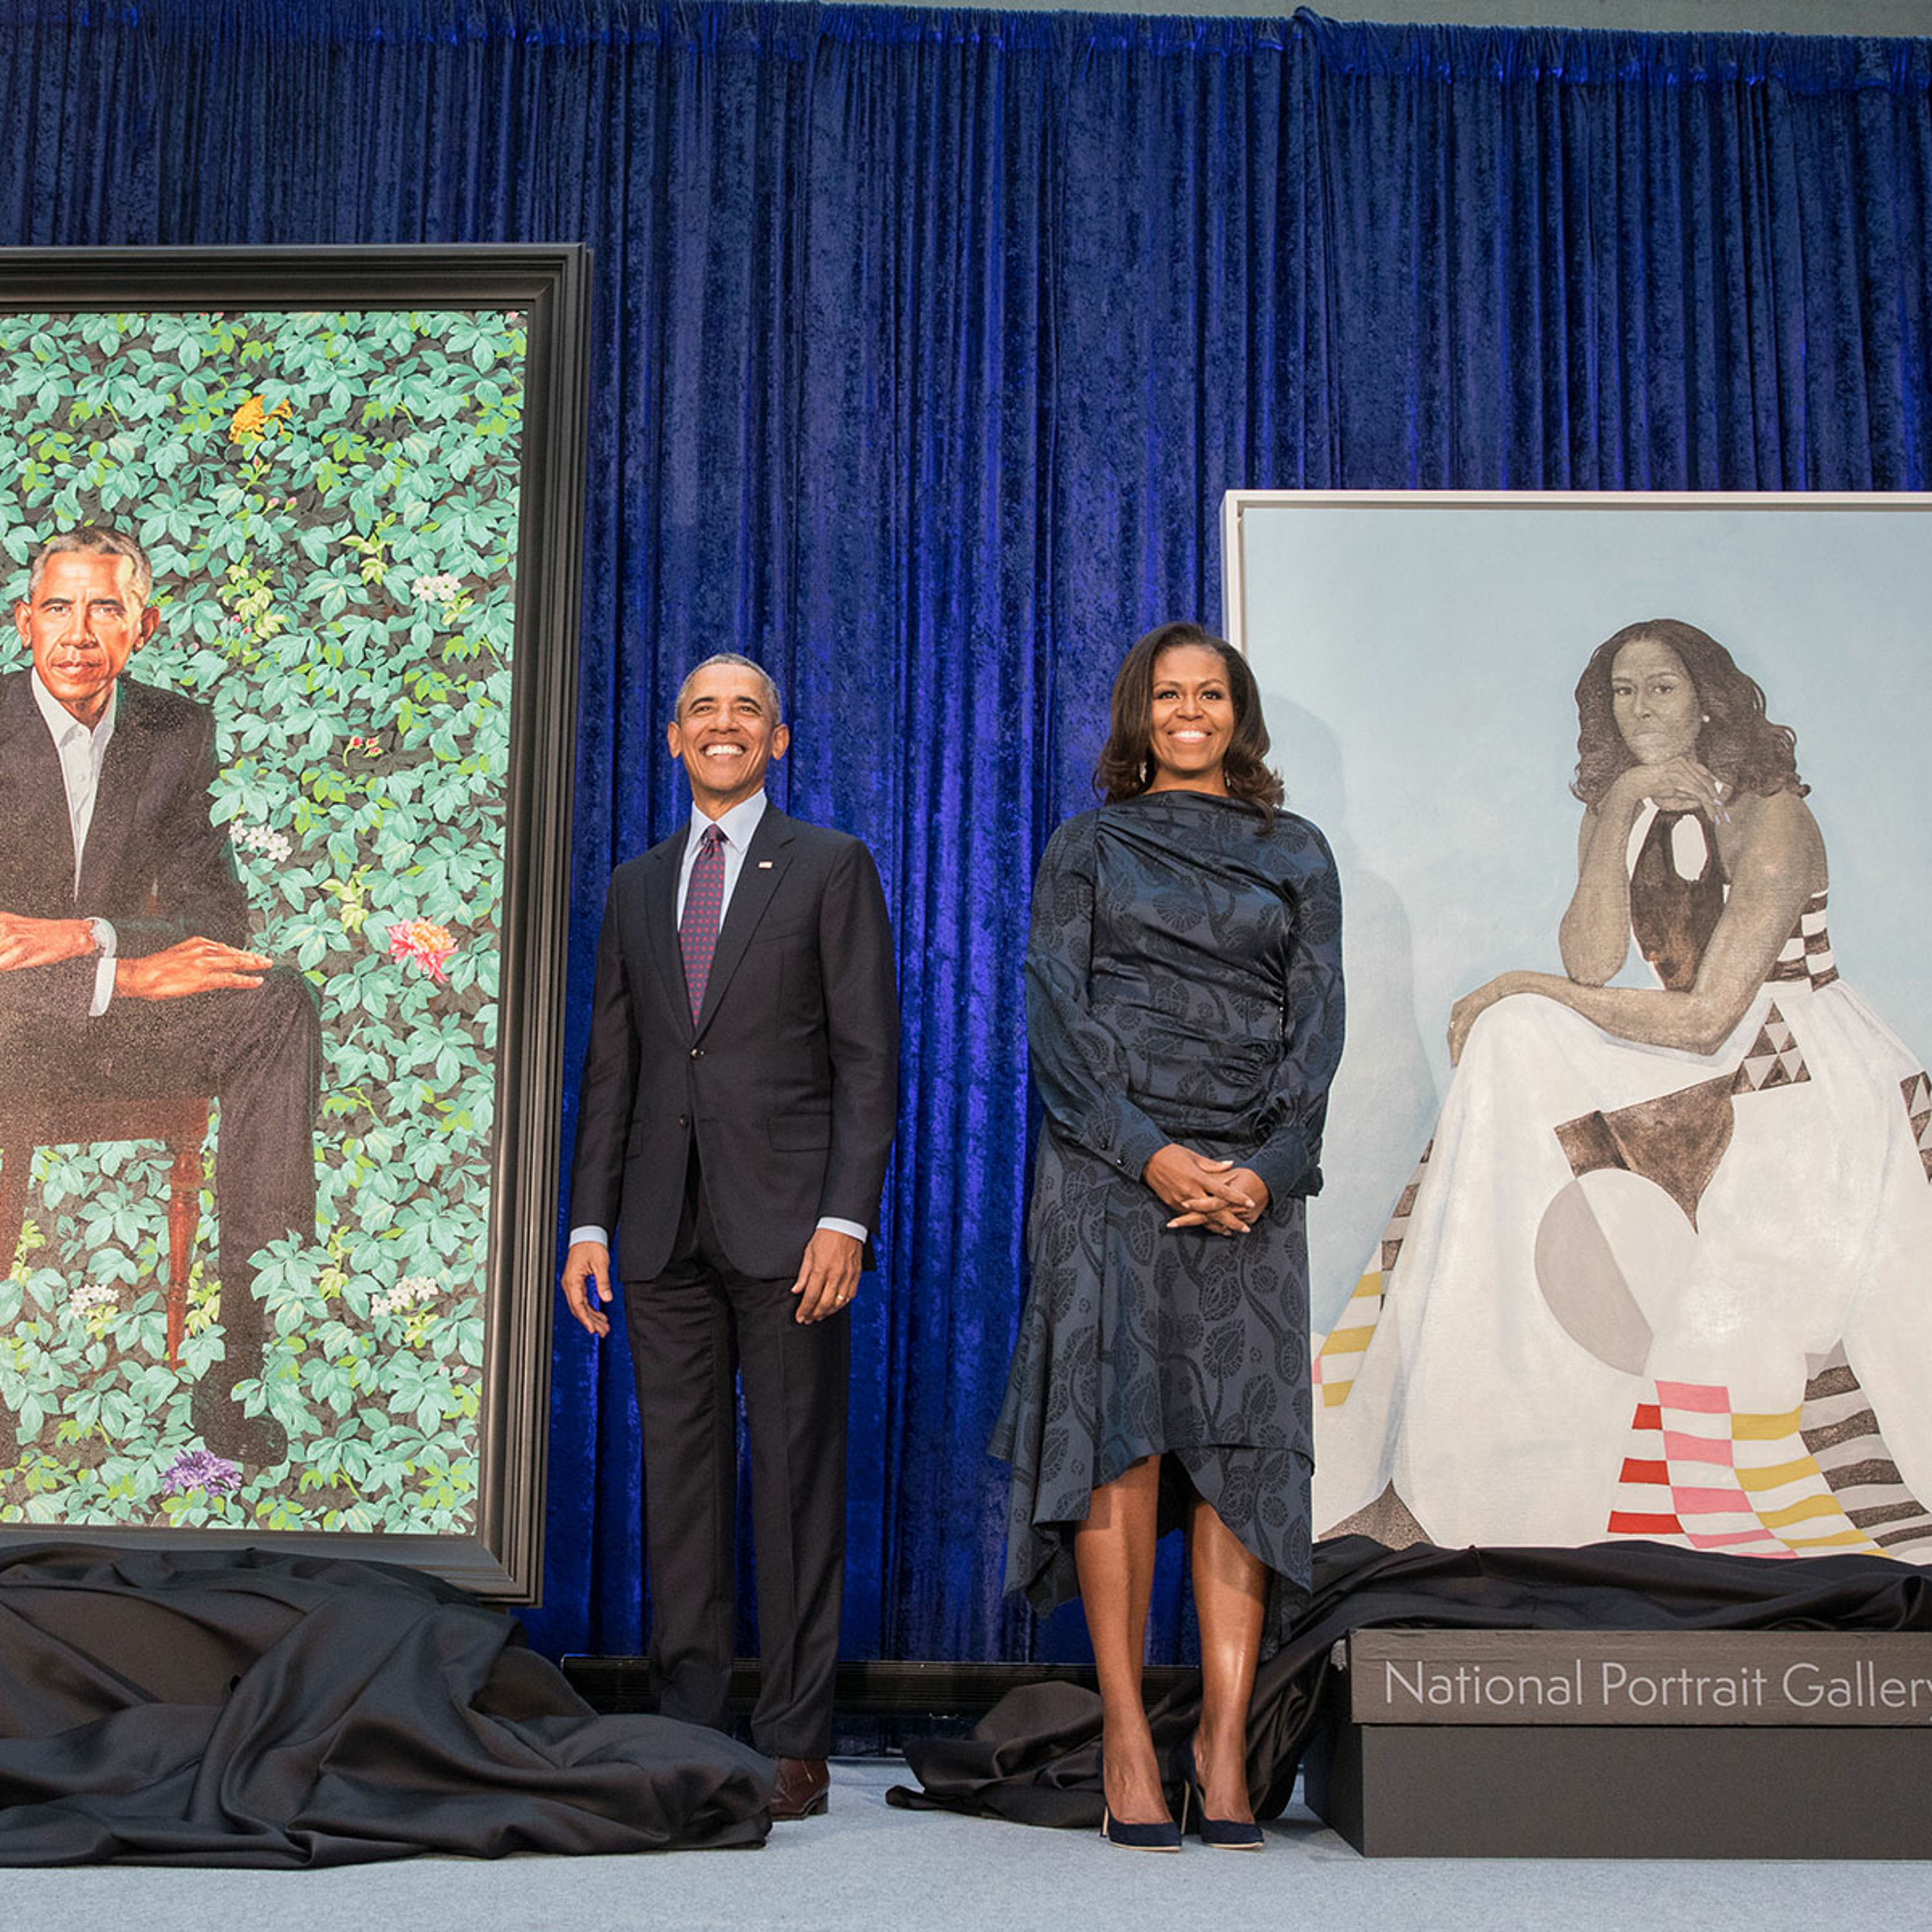 No. 71: What the Obama Portraits Tell Us about Art and Politics